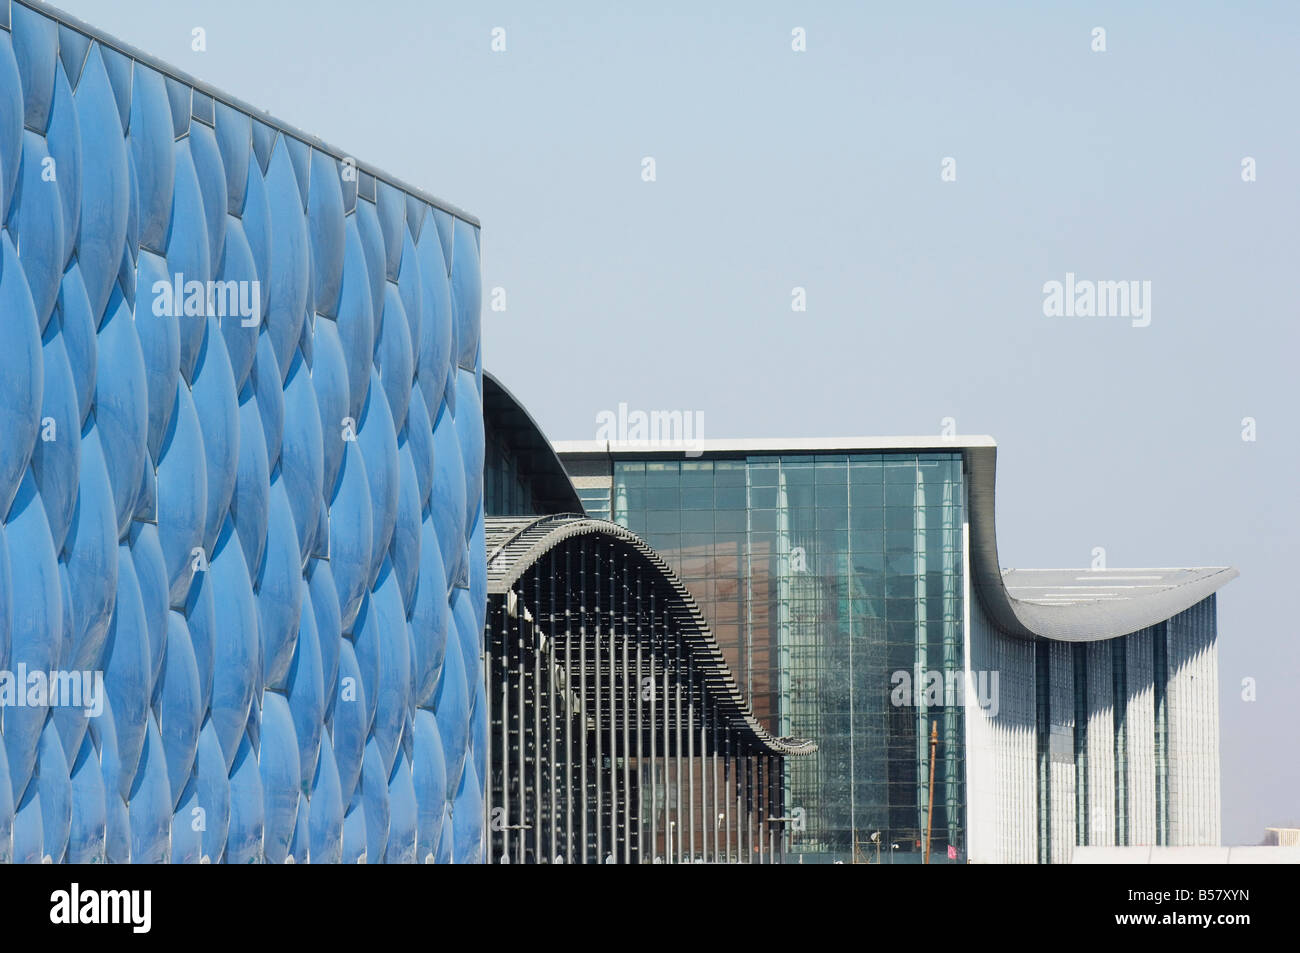 The Water Cube National Aquatics Center swimming arena in the Olympic Park, Beijing, China, Asia - Stock Image